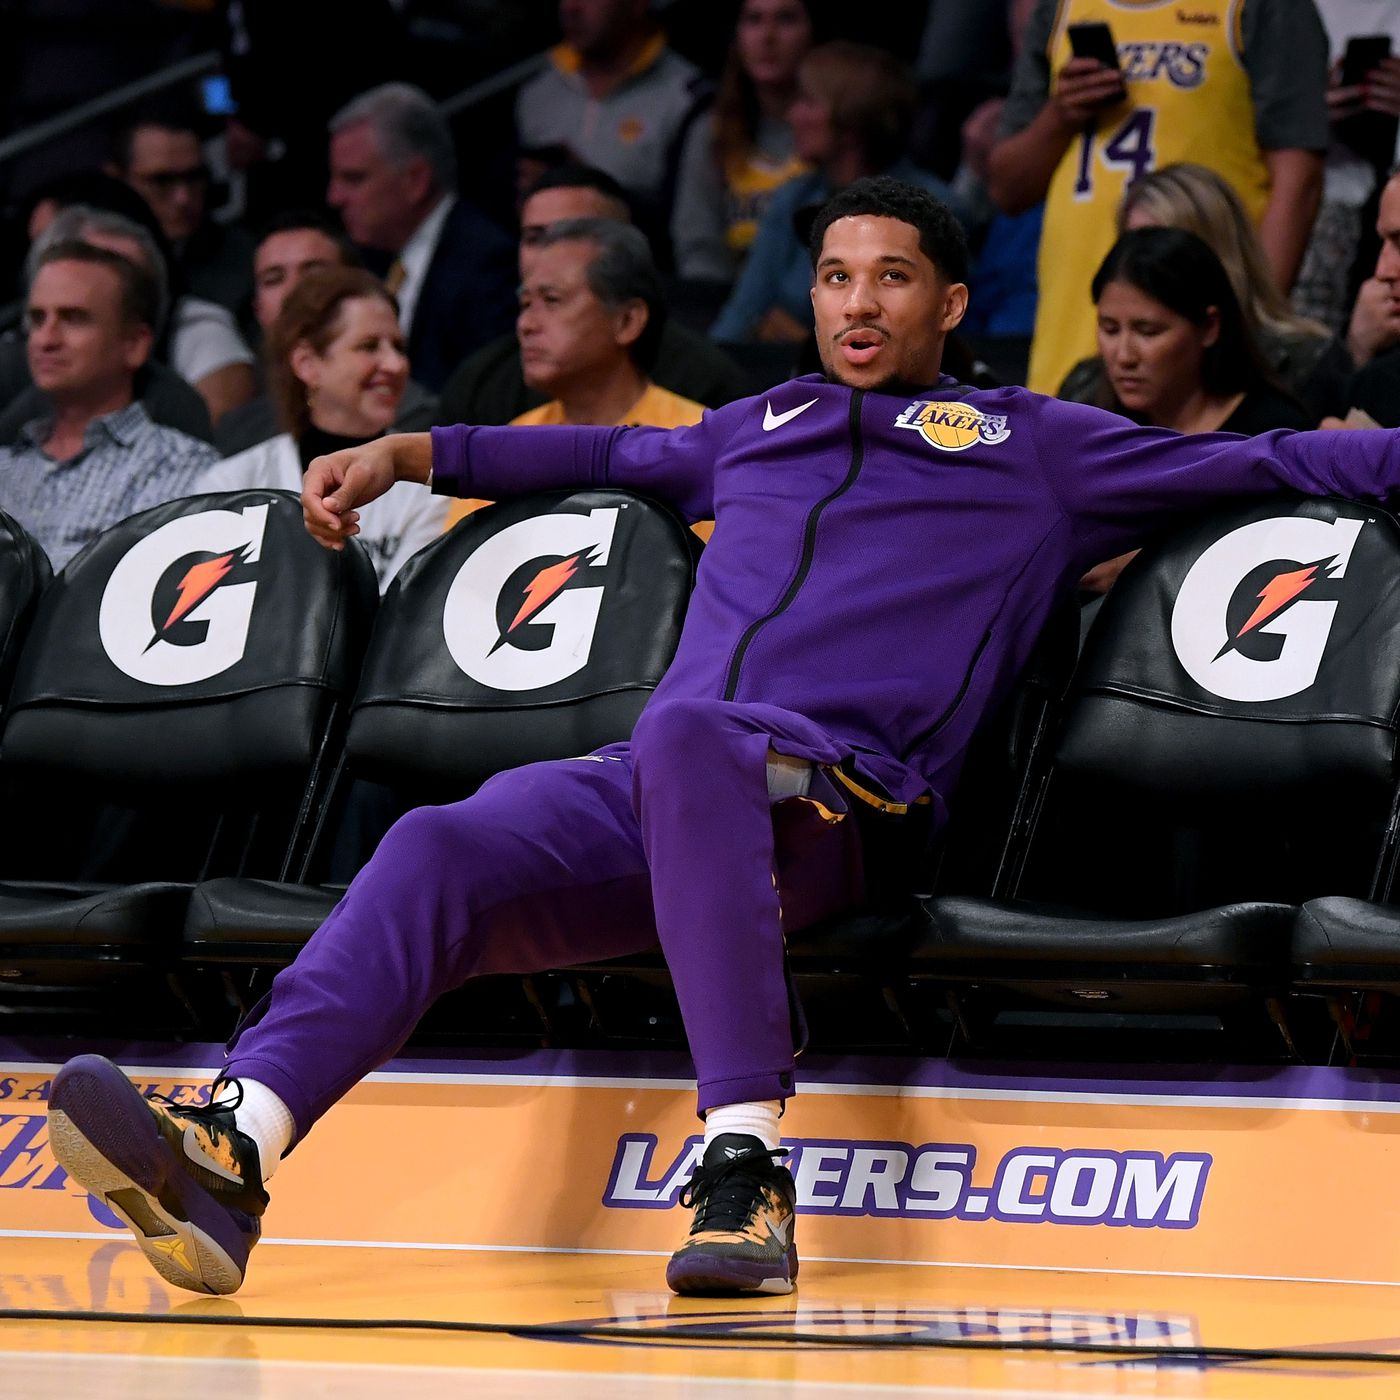 a2e633dbc12 Lakers keep leaving Josh Hart hanging on high-fives. This must end -  SBNation.com